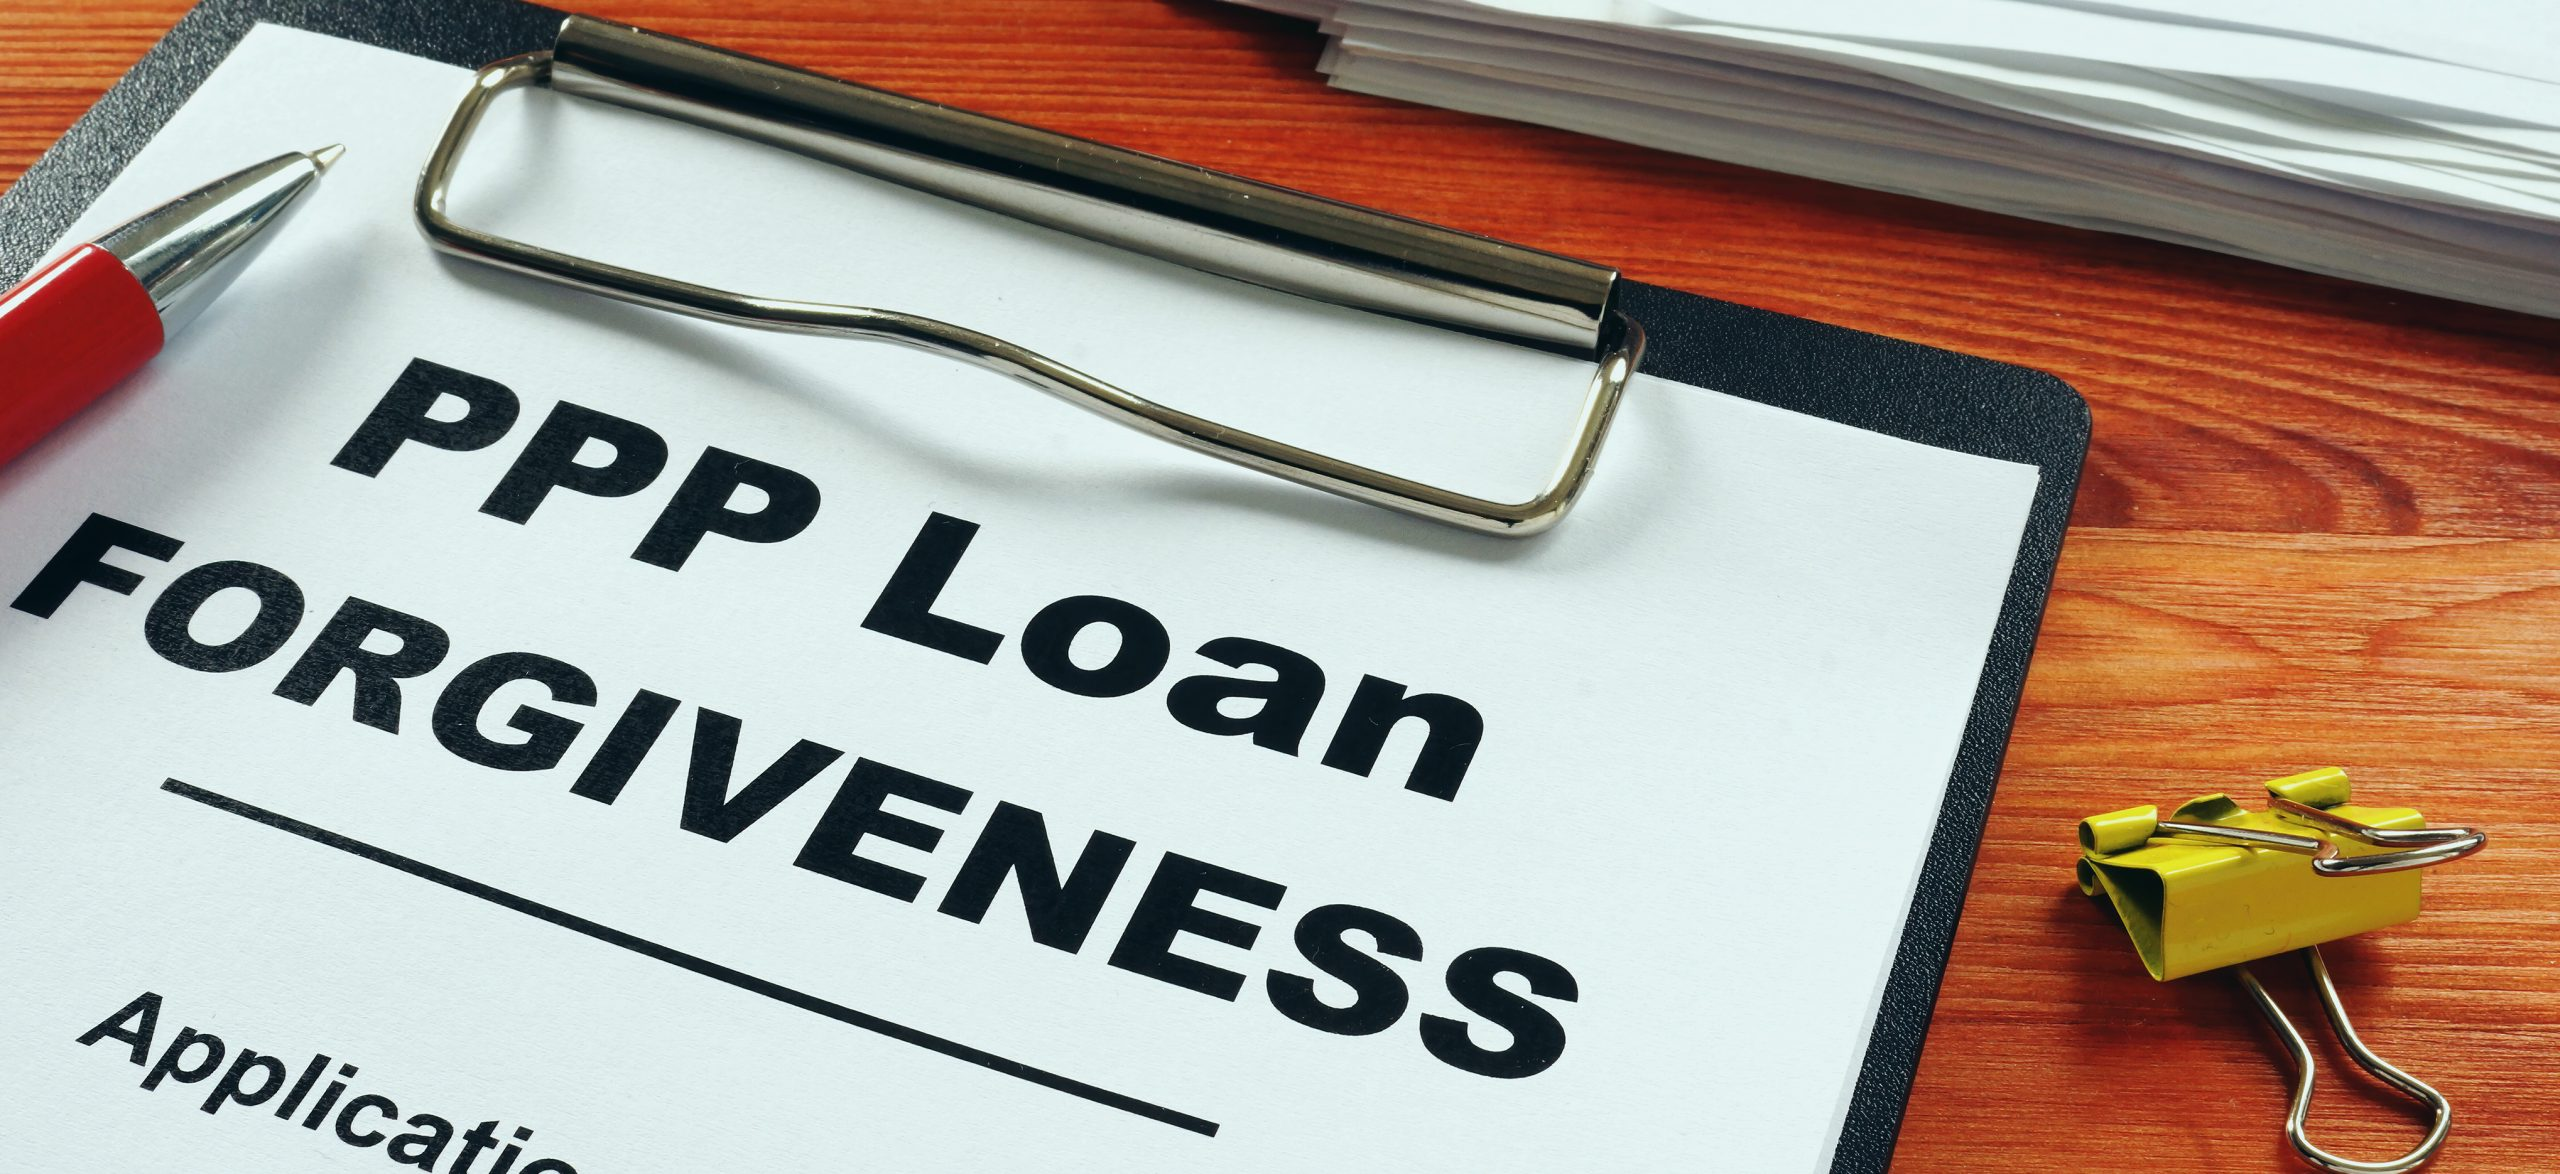 PPP Loan Forgiveness – Update!